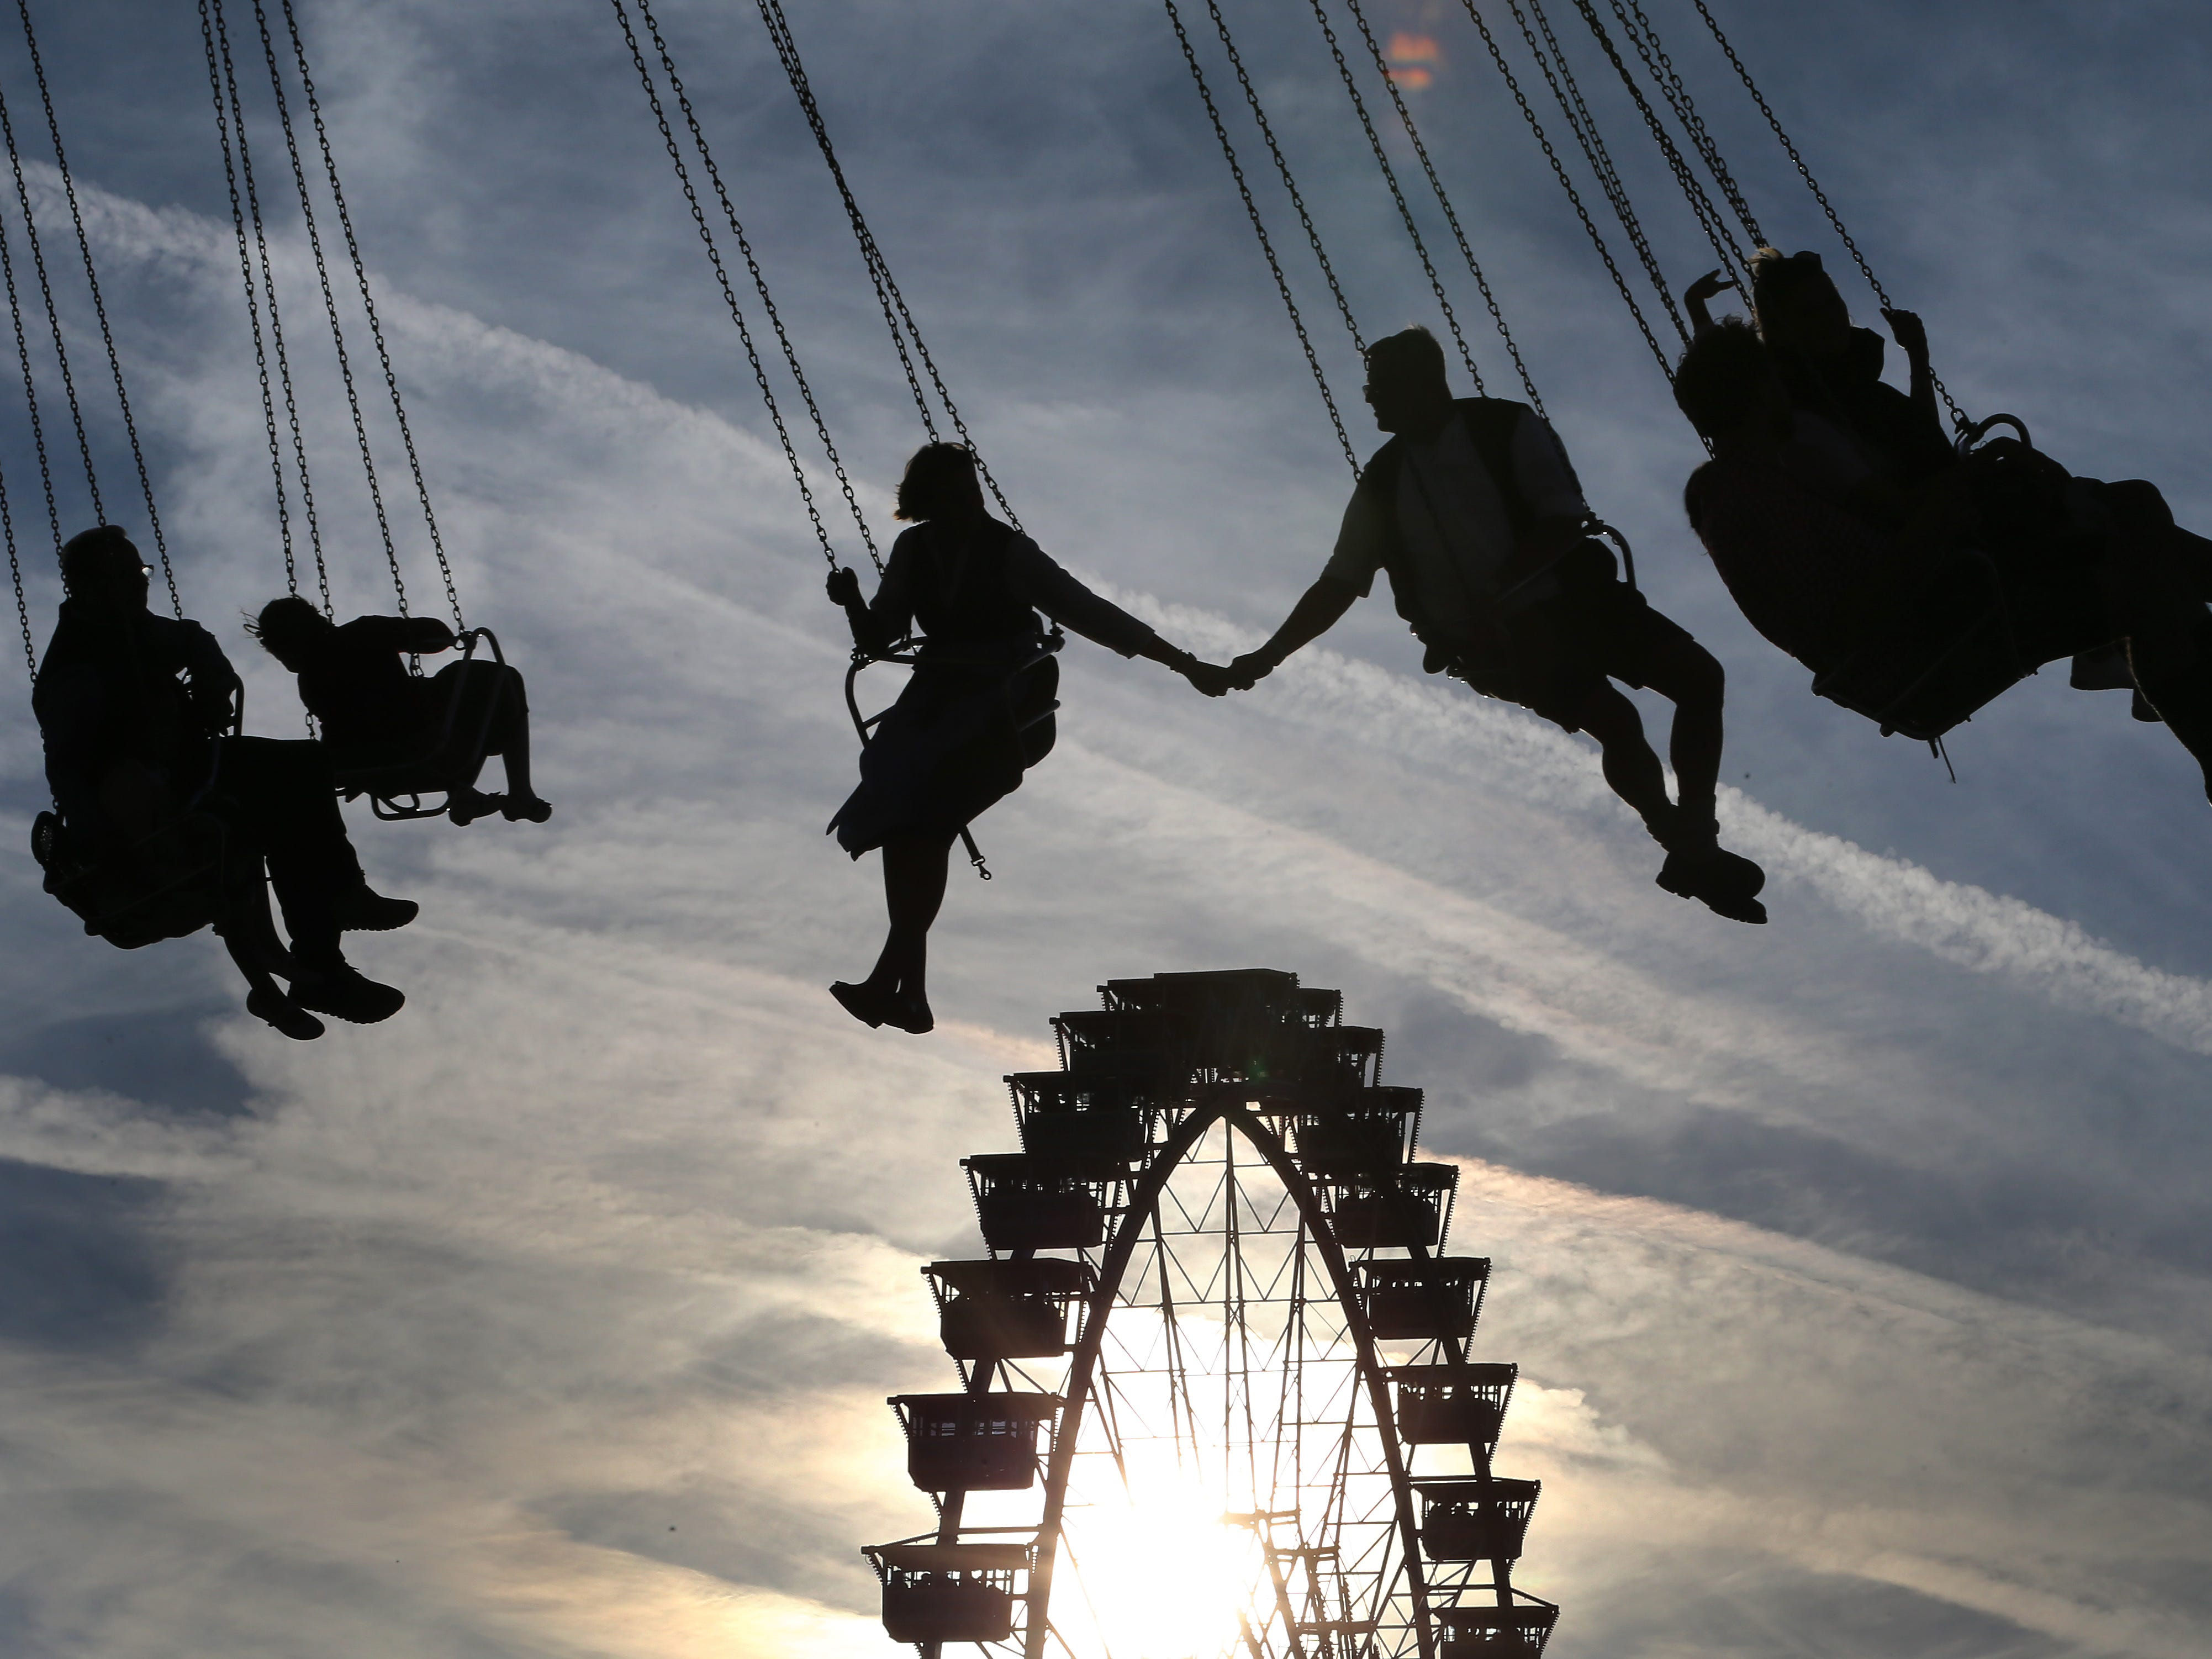 A couple hold hands as they ride a merry-go-round at the Theresienwiese fair ground of the Oktoberfest beer festival in Munich, southern Germany, on Sept. 22, 2018.